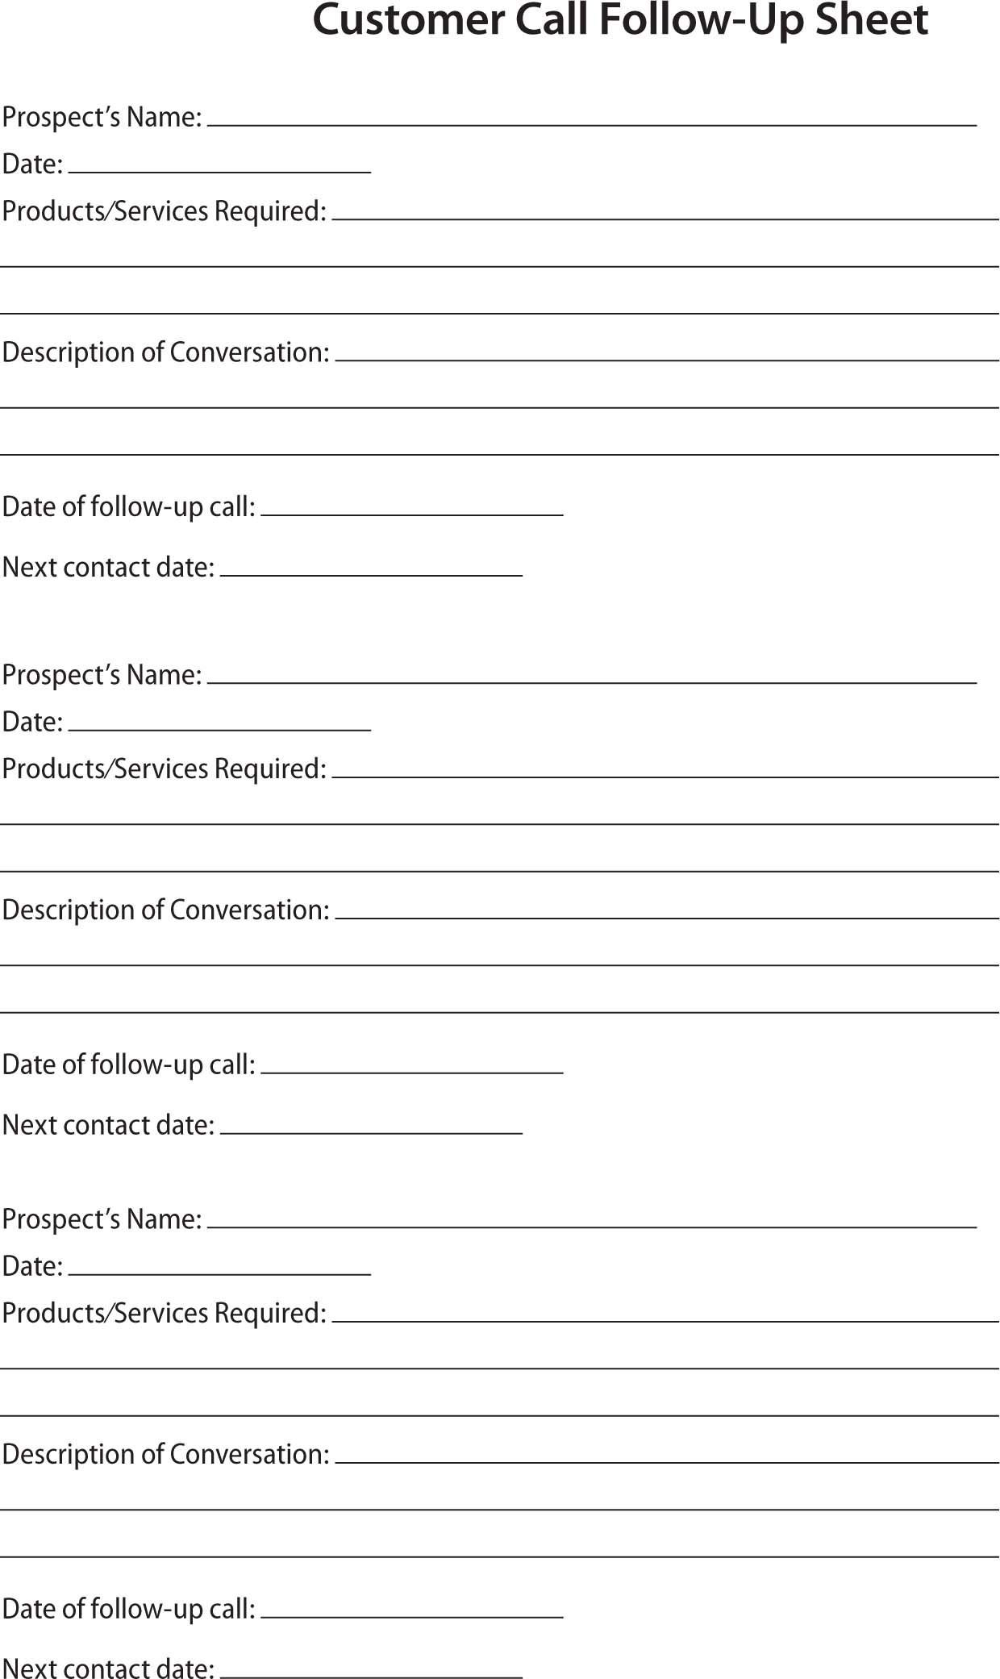 Prospect Sheet Customer Call Follow Up Call Sheet Catering Intended For Customer Contact Report Template 10 Sales Report Template How To Plan Business Tools